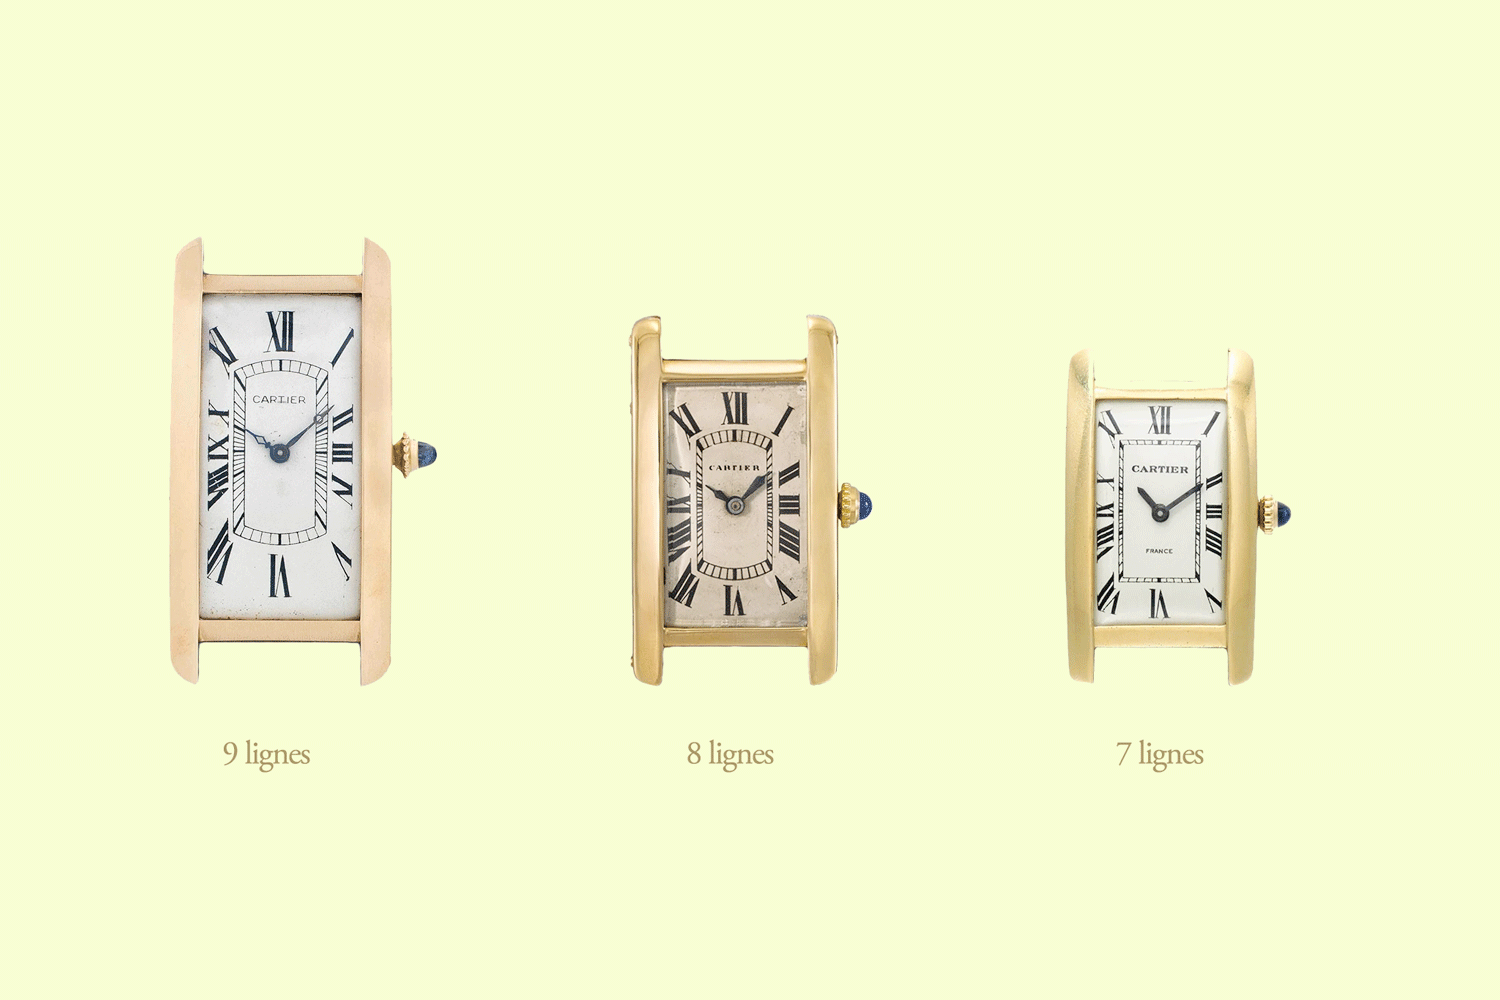 Lignes are a unit of measurement for watch movements with one ligne equaling 2.25mm or 1mm being the equivalent of 0.44 lignes; modern scholarship suggests that the Tank Cintrée was made in three size variations, as seen above for comparison, determined by the movement sizes used within (Graphic recreated from acollectedman.com)